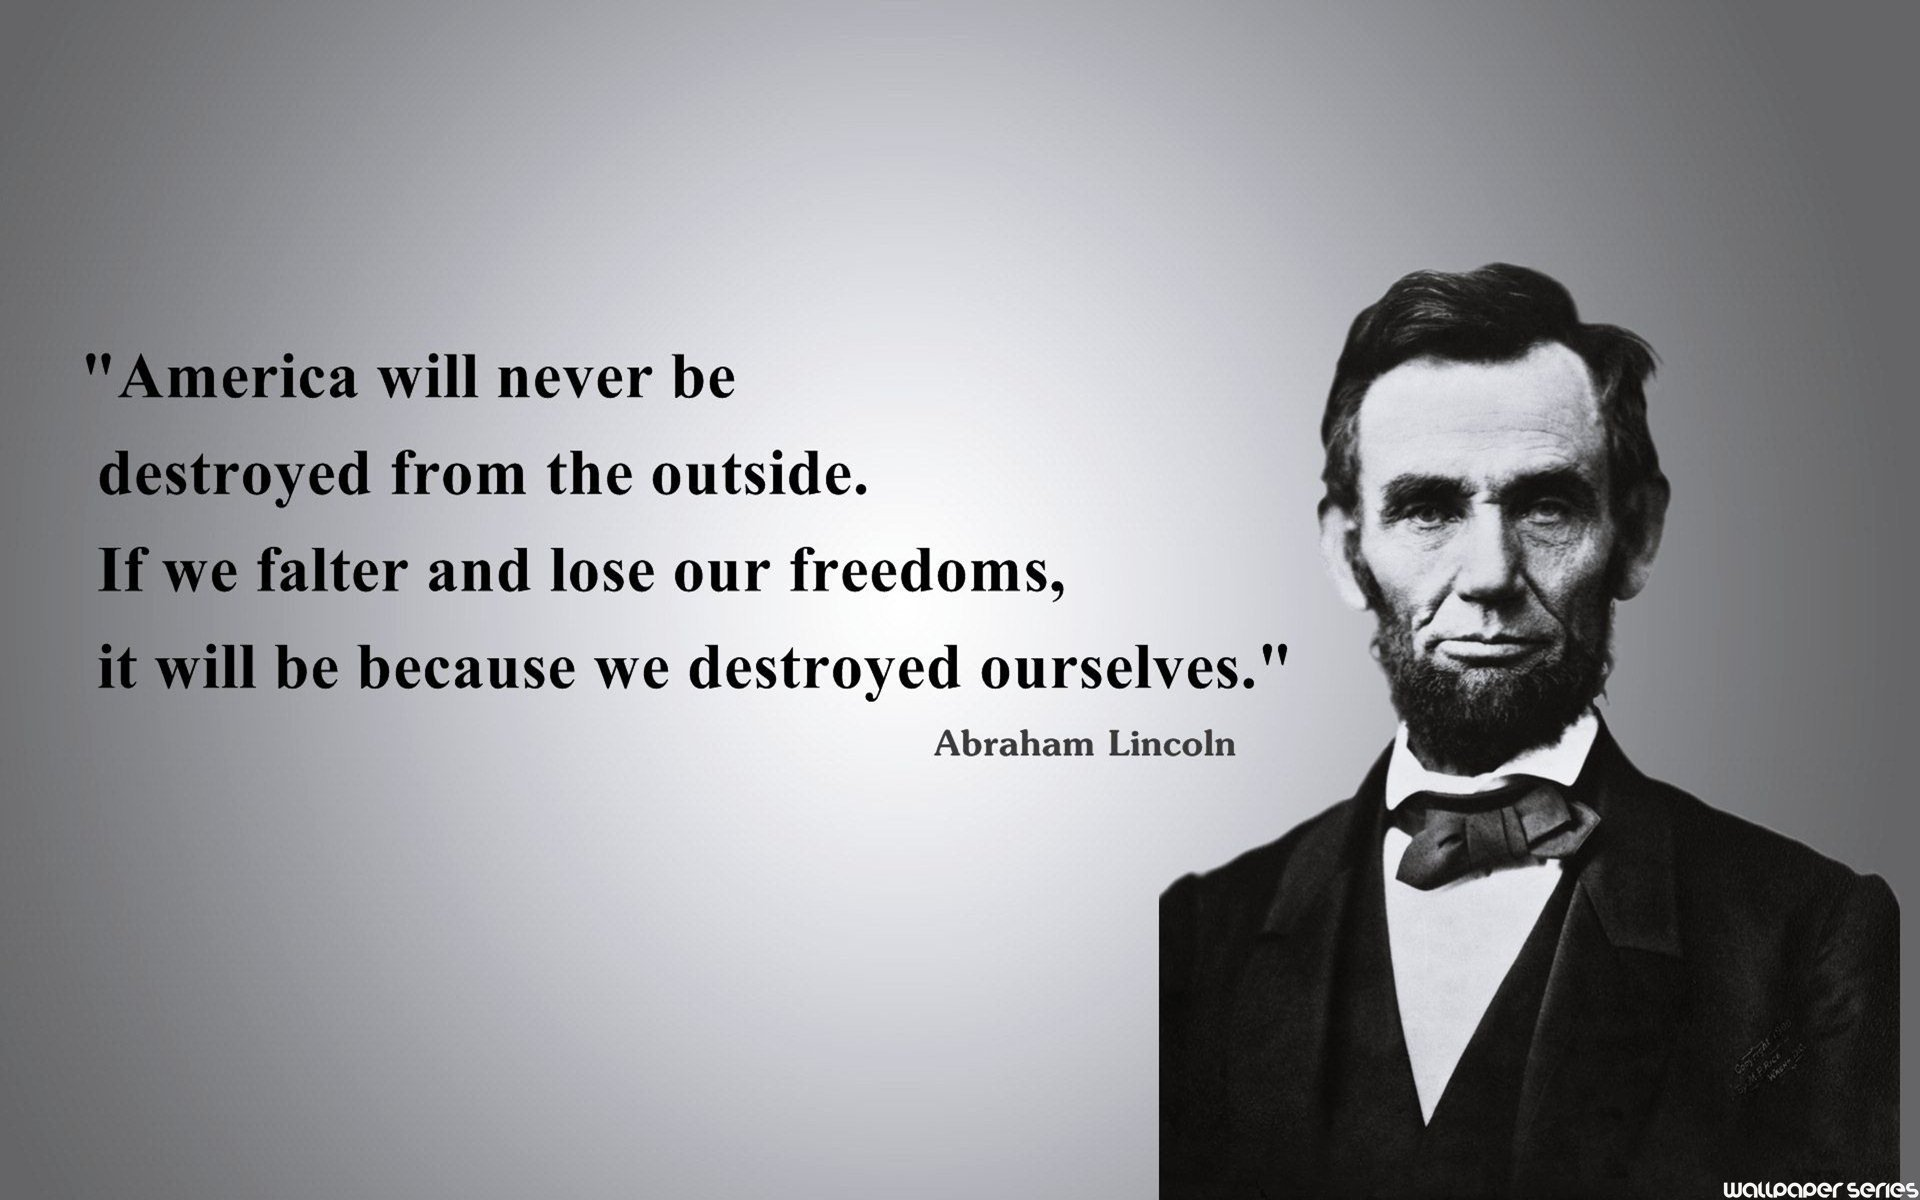 Best Meaningful Quotes Wallpapers Abraham Lincoln Wallpaper 1920x1200 61340